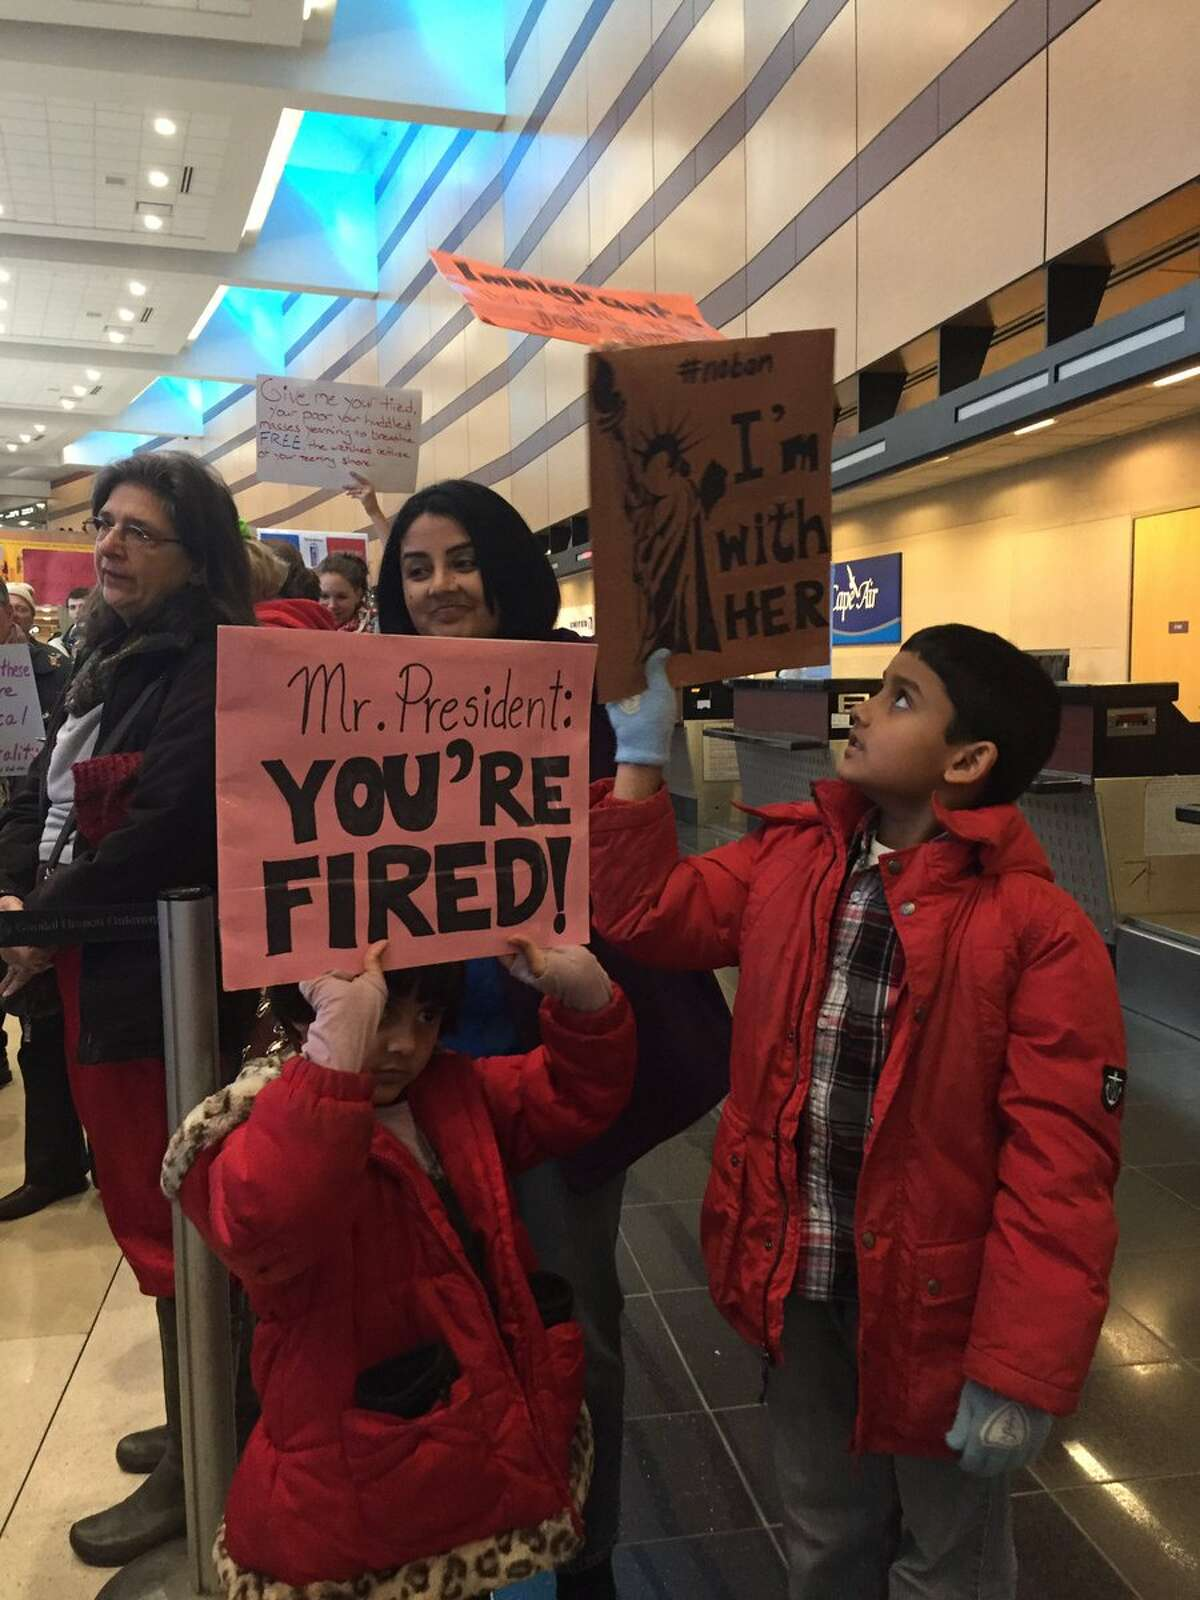 Children were among the protestors who filled the first floor of Albany International Airport Sunday, Jan. 29, 2017, who were speaking out against President Donald Trump's immigration order that stopped refugees from seven Muslim-majority nations from entering the U.S. (Amanda Fries/Times Union)